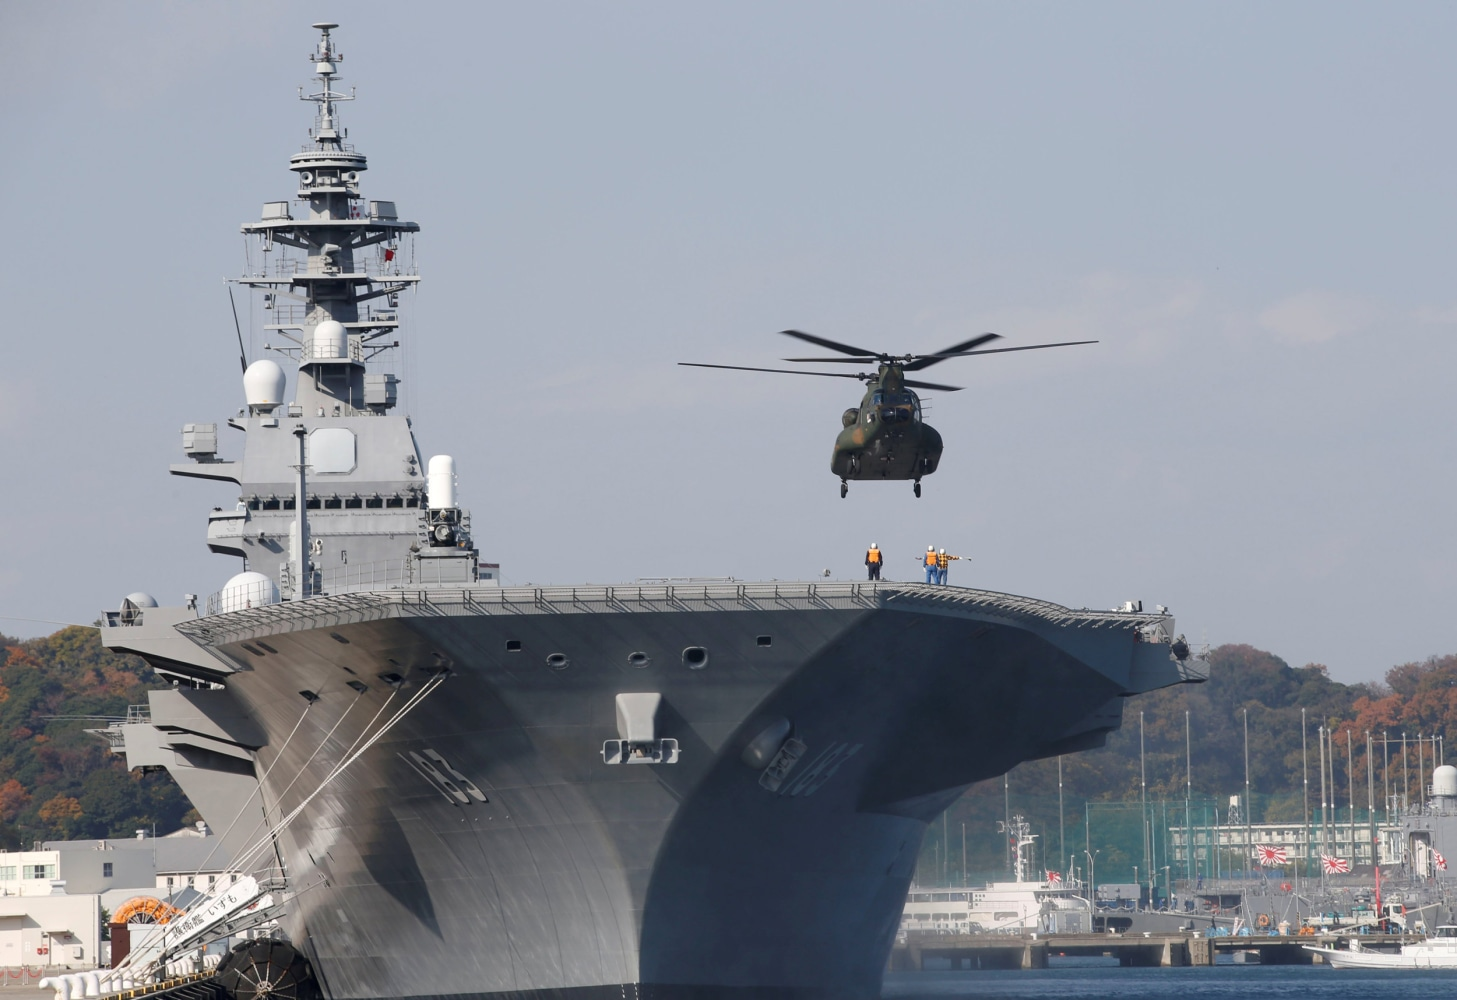 http://media3.s-nbcnews.com/j/newscms/2017_11/1931026/170313-japan-isumo-helicopter-carrier-725a_b180e096e91ceb3a9b4b30392fb8b580.nbcnews-ux-2880-1000.jpg